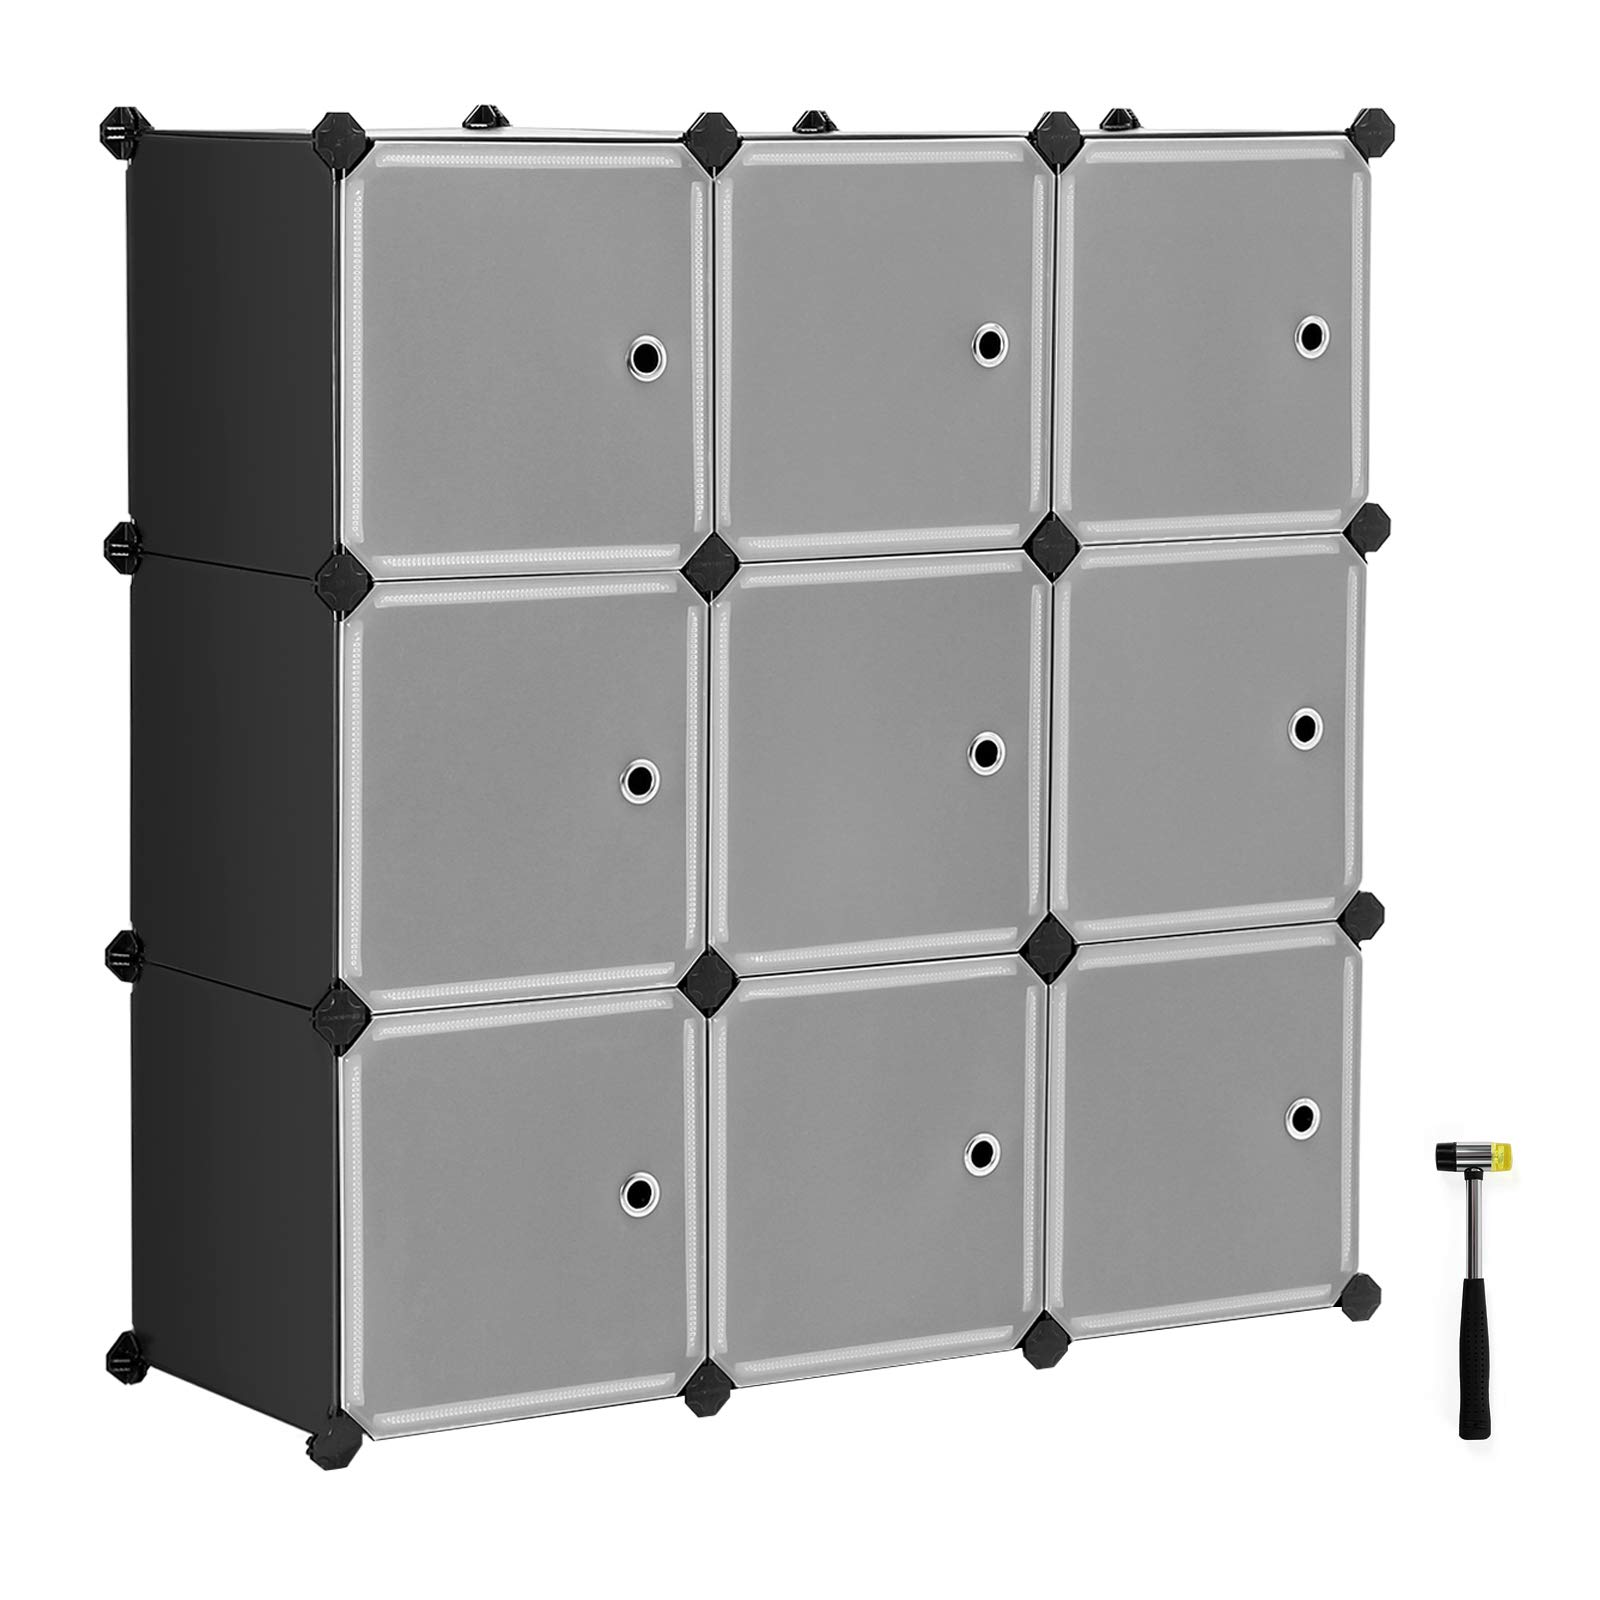 SONGMICS Cube Storage Organizer, 9-Cube DIY Plastic Closet Cabinet, Modular Bookcase, Storage Shelving with Doors for Bedroom, Living Room, Office, 36.6 L x 12.2 W x 36.6 H Inches Black ULPC33HV1 by SONGMICS (Image #1)